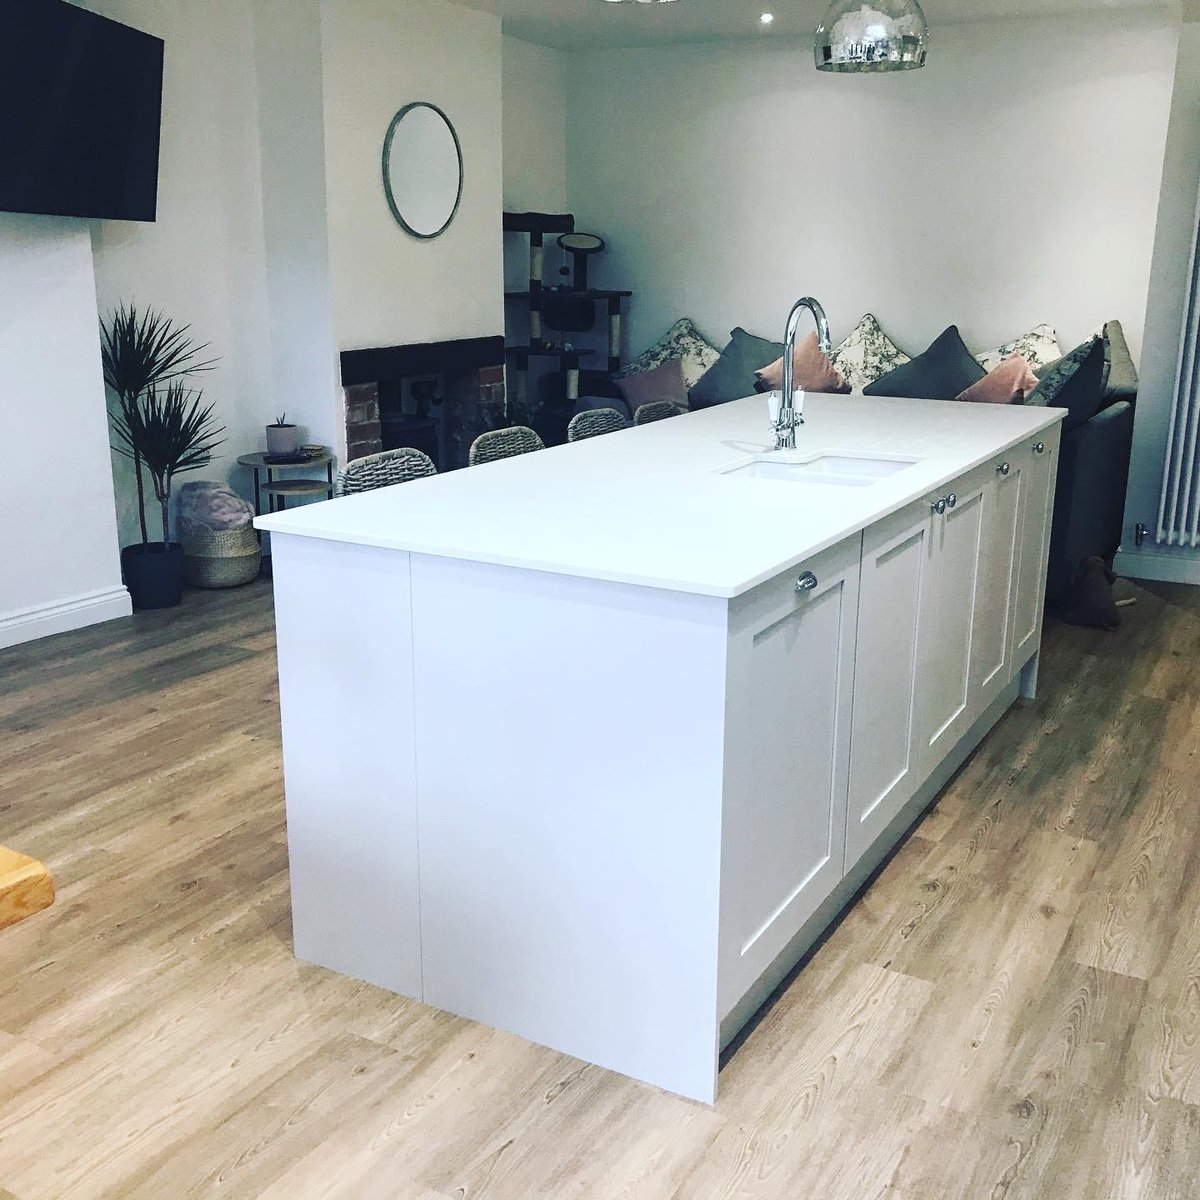 Benchmarx On Twitter Beautiful Oxford Dove Grey Kitchen Makes Any Kitchen The Heart Of The Heart Of The Home Benchmarx Benchmarxkitchens Kitchens Traditionalkitchens Design Https T Co F50gwfwz6a